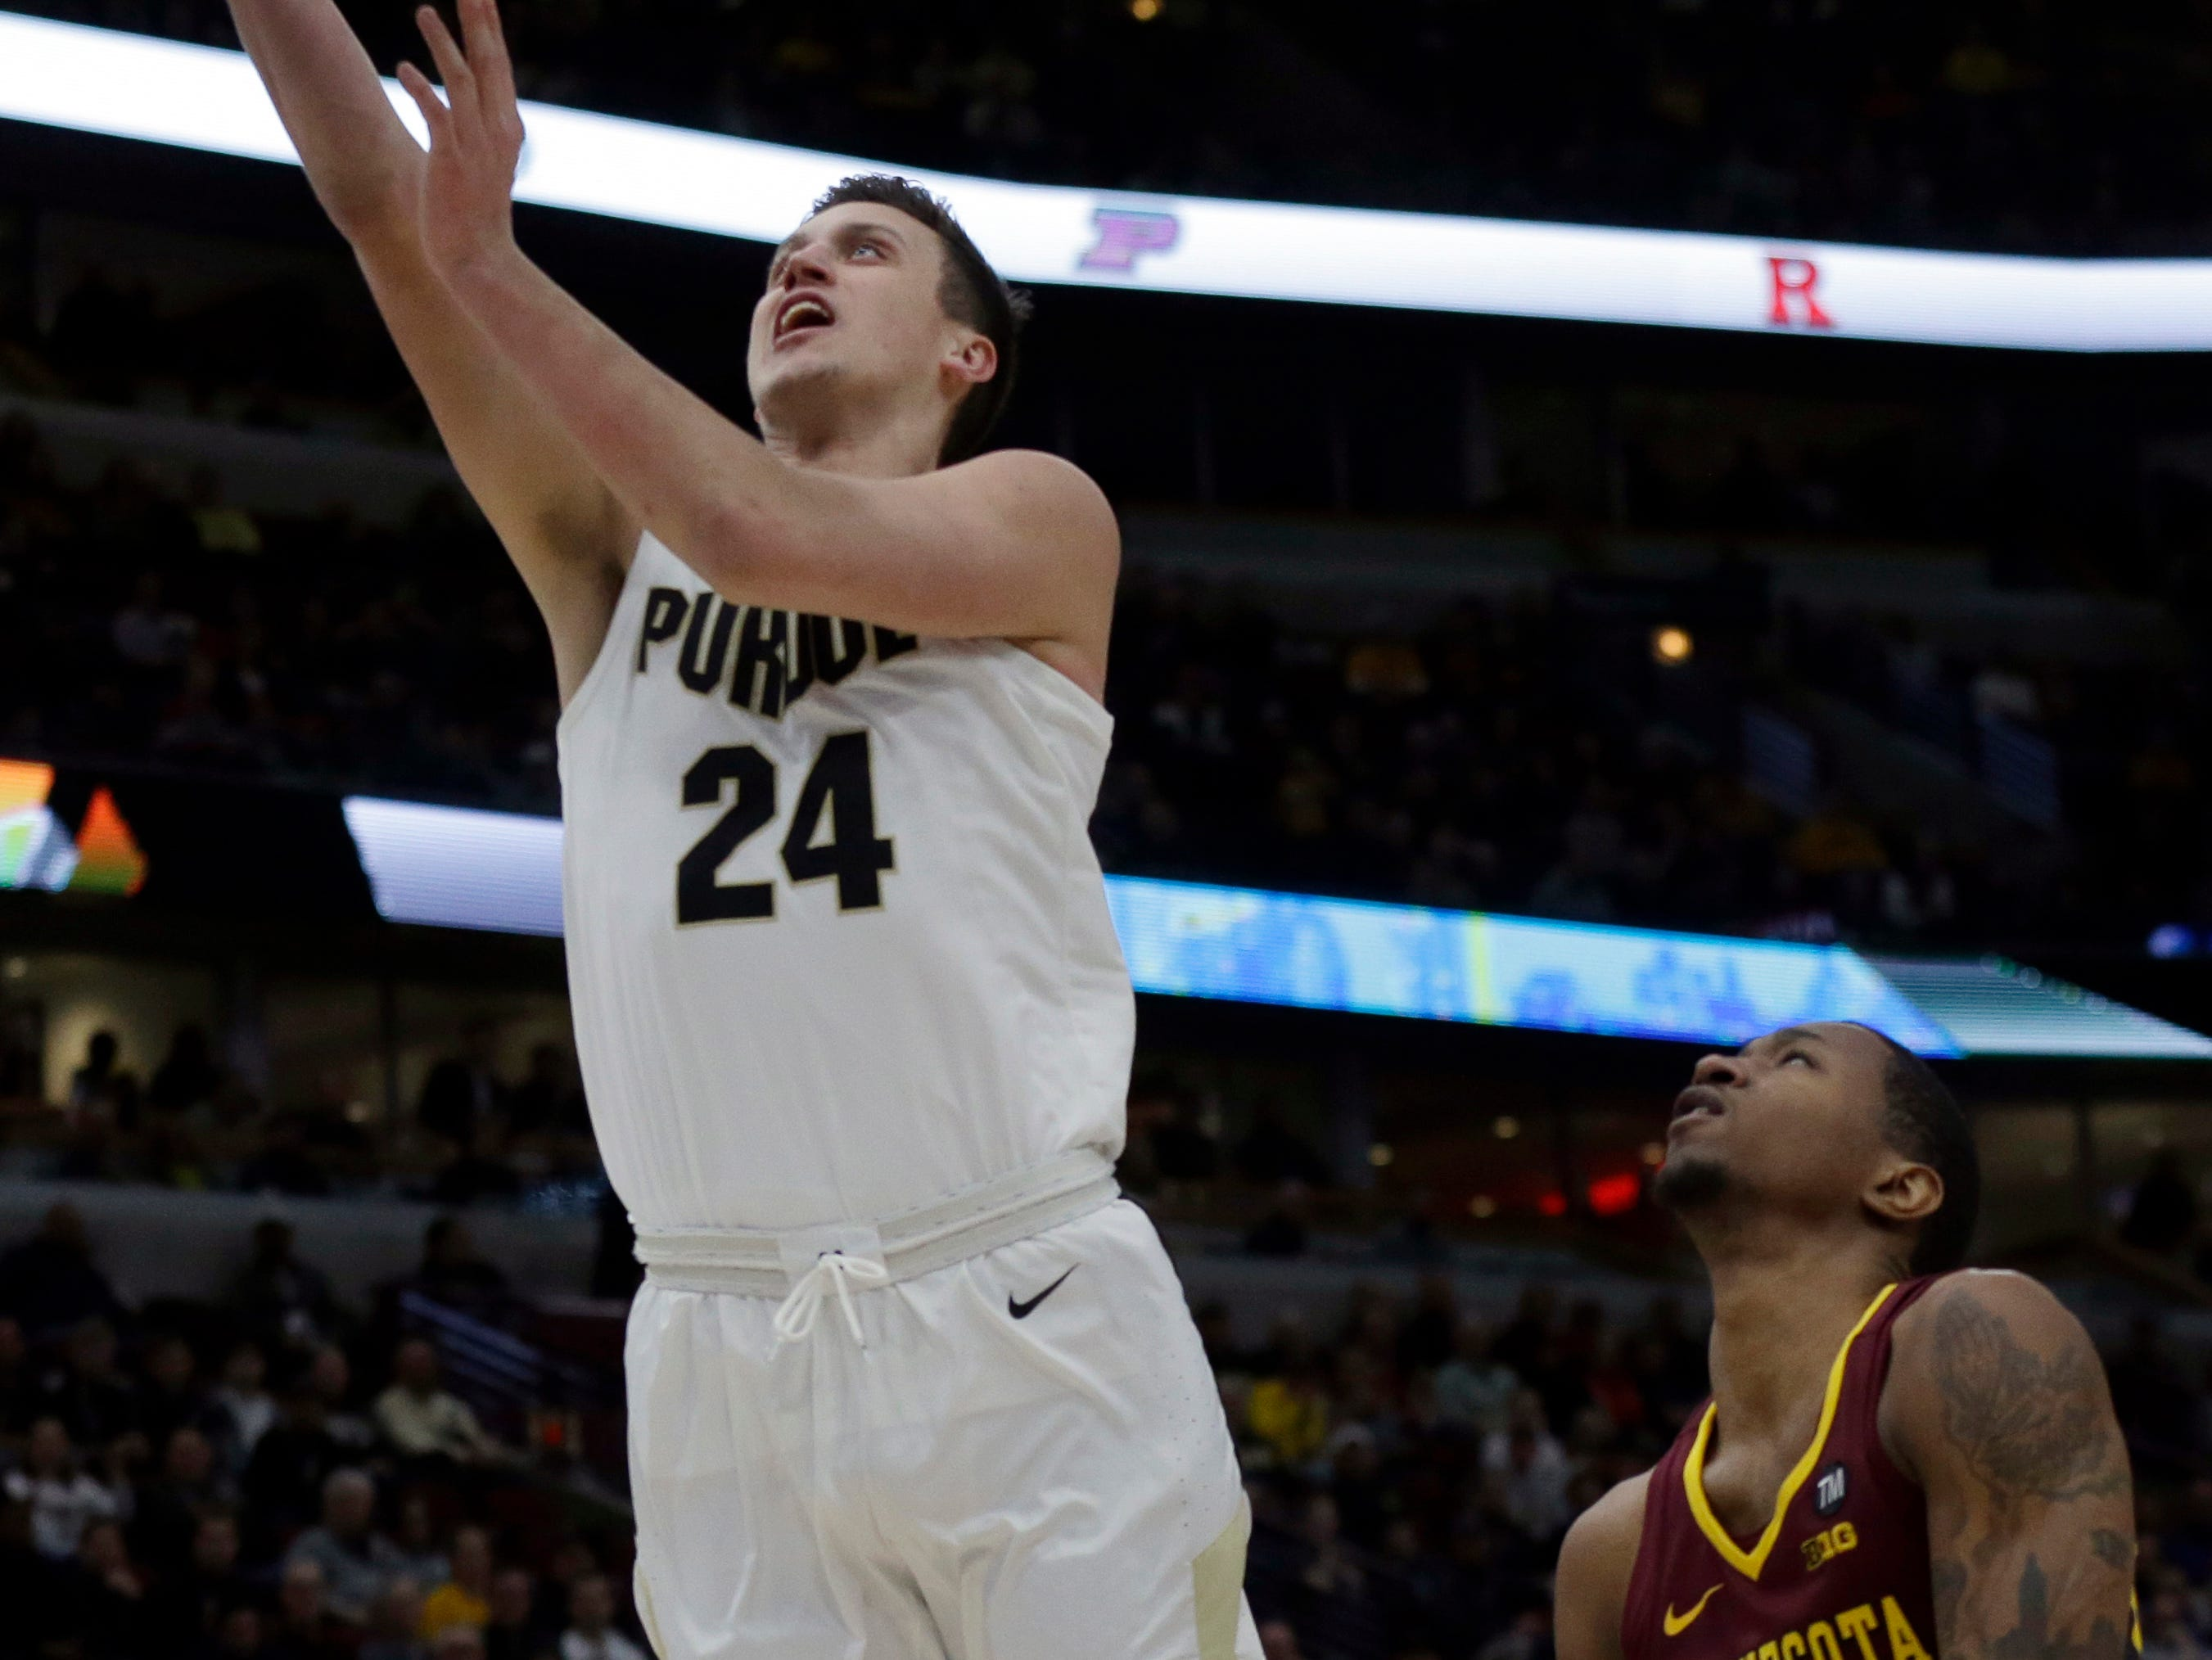 Purdue's Grady Eifert (24) goes up for a lay up against Minnesota's Dupree McBrayer (1) during the first half of an NCAA college basketball game in the quarterfinals of the Big Ten Conference tournament, Friday, March 15, 2019, in Chicago. (AP Photo/Kiichiro Sato)